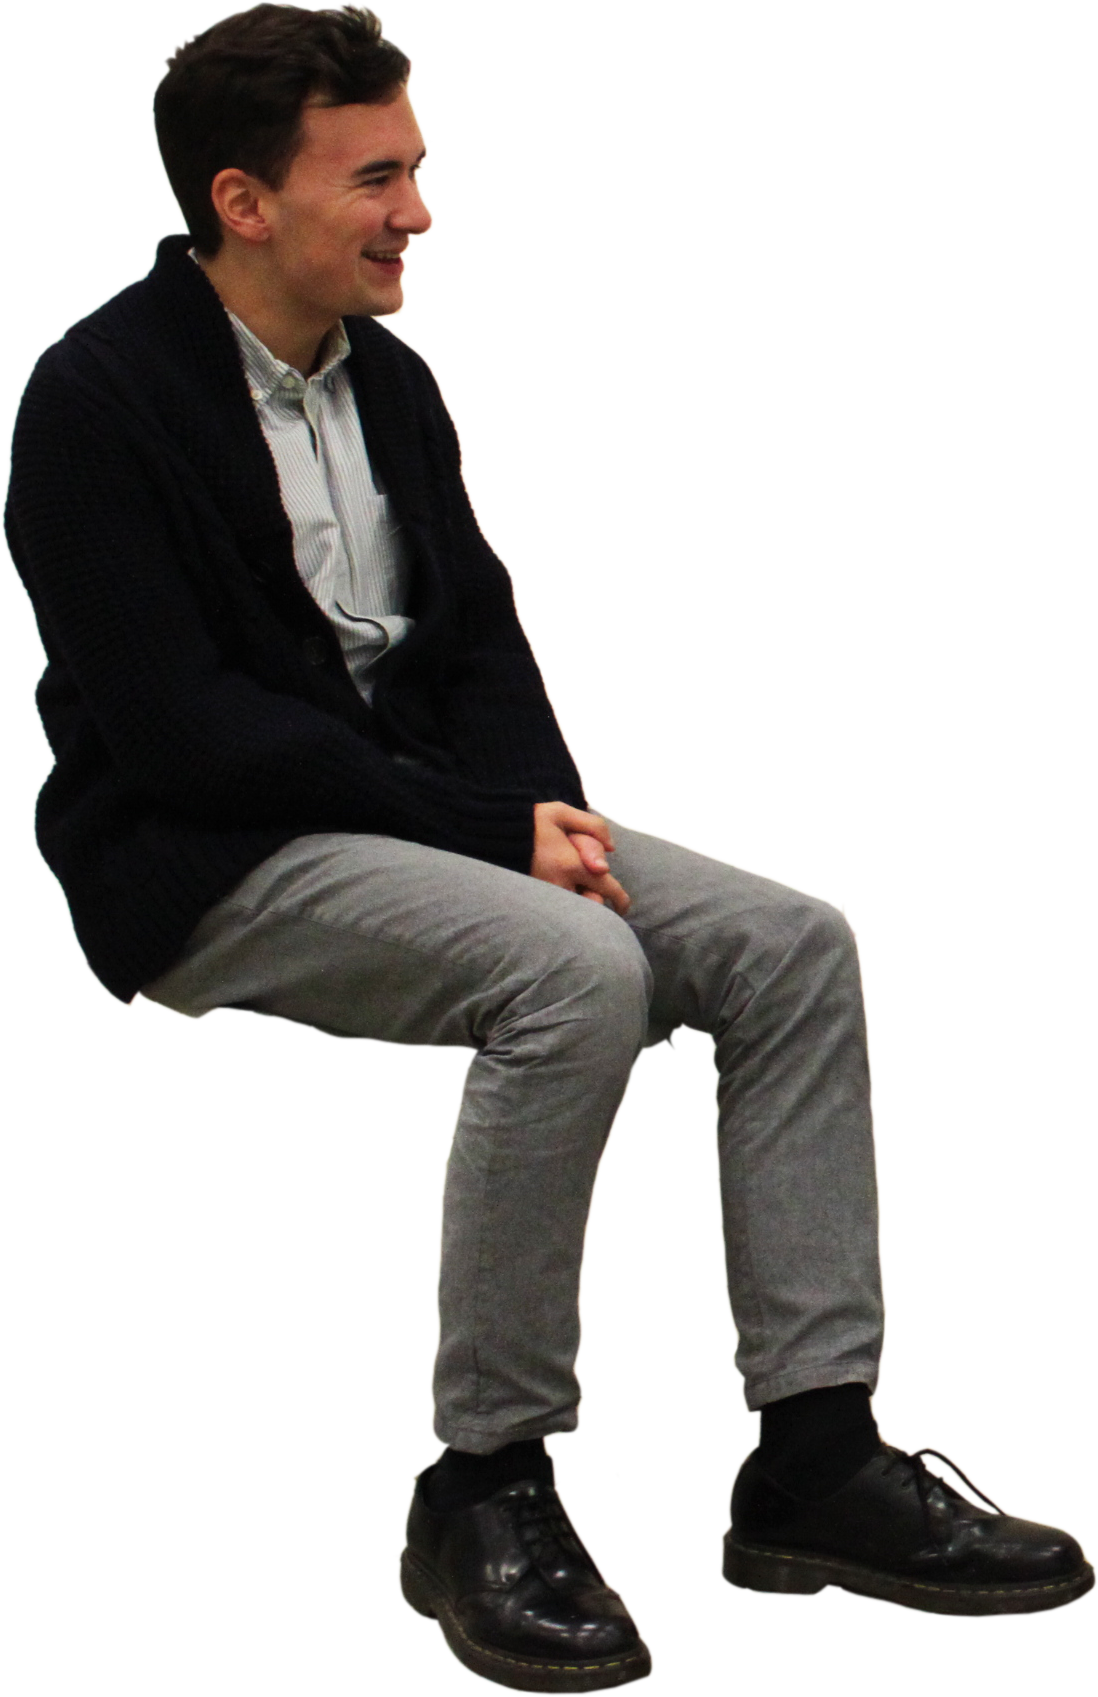 Guy on floor png. Sitting man images free